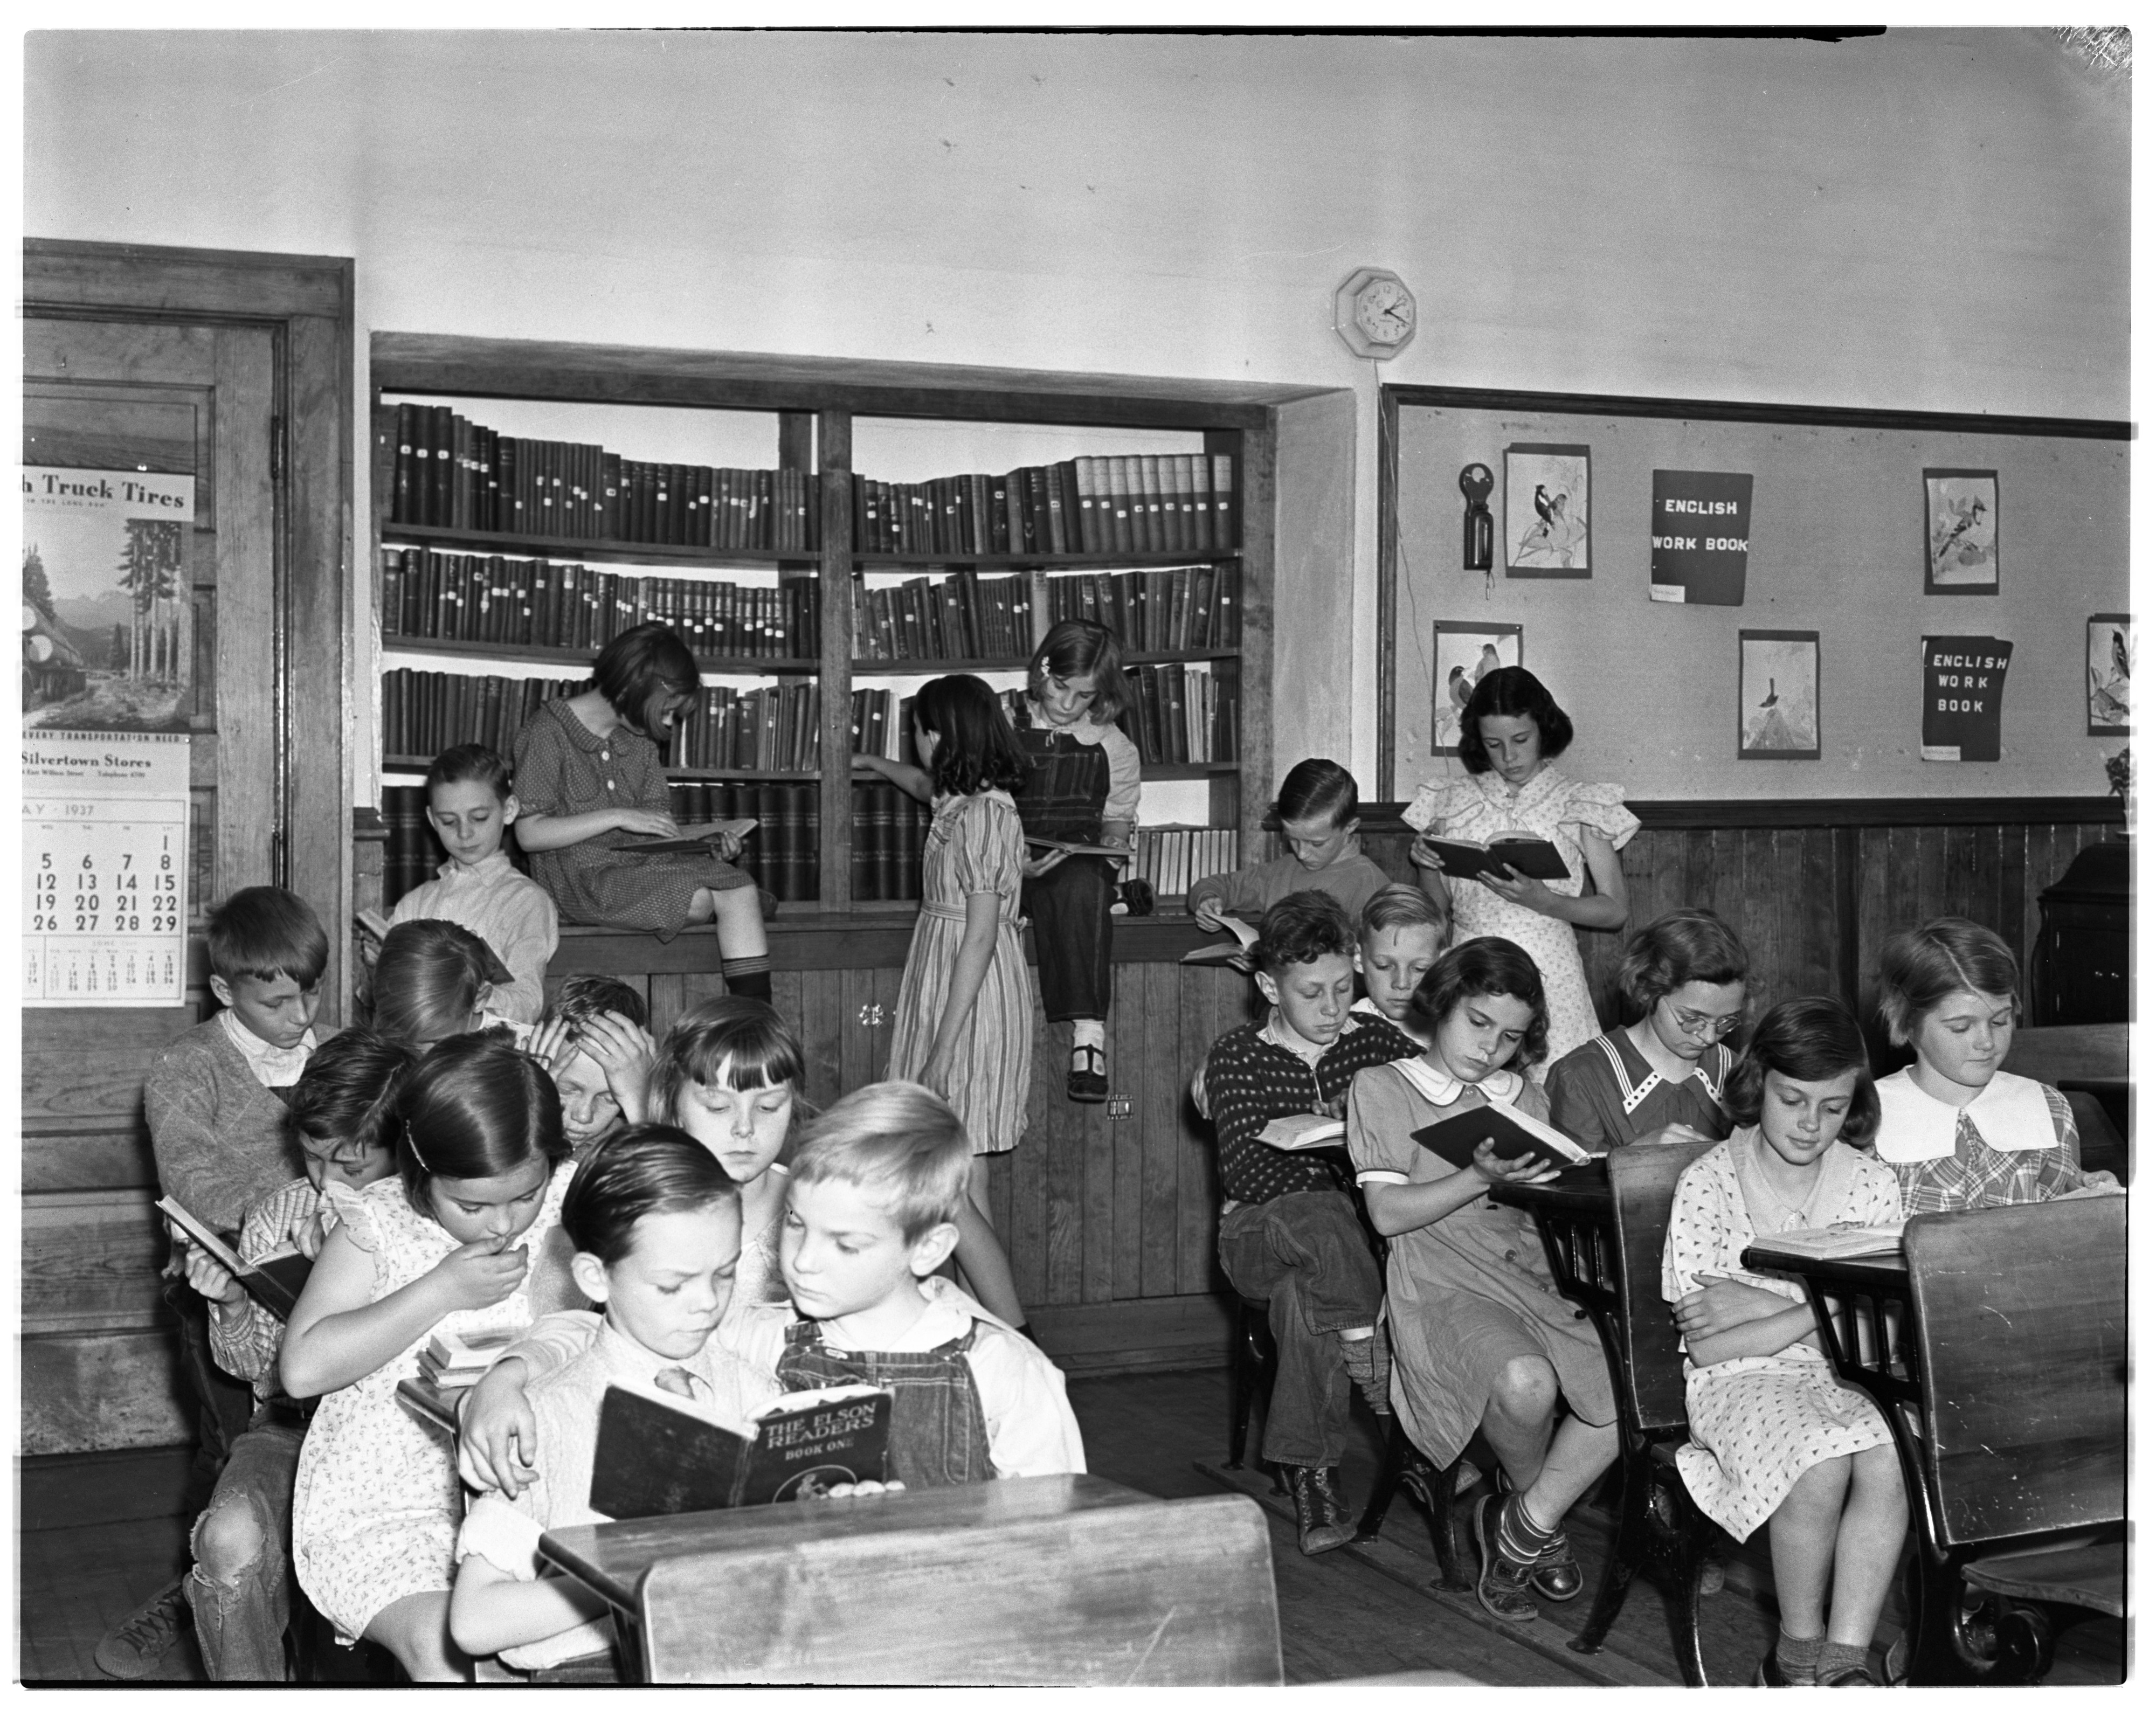 Children Reading at Delhi School image